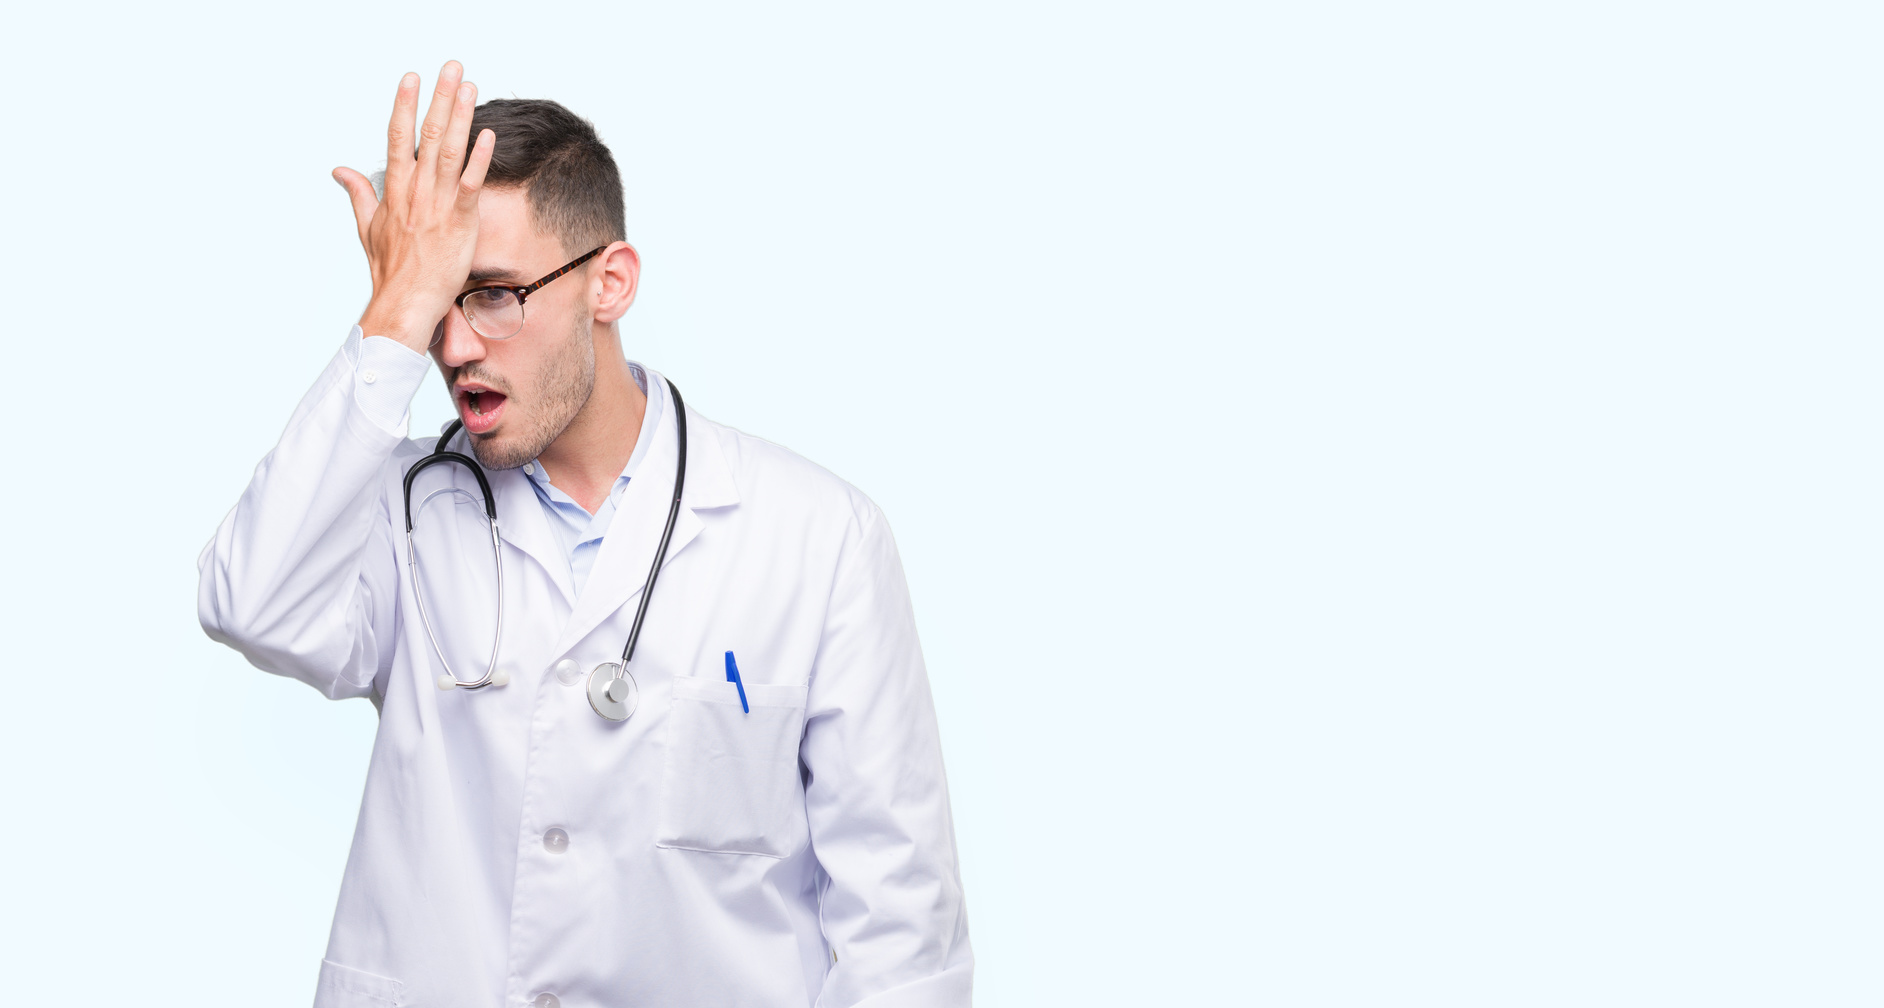 Handsome young doctor man surprised with hand on head for mistake, remember error. Forgot, bad memory concept.